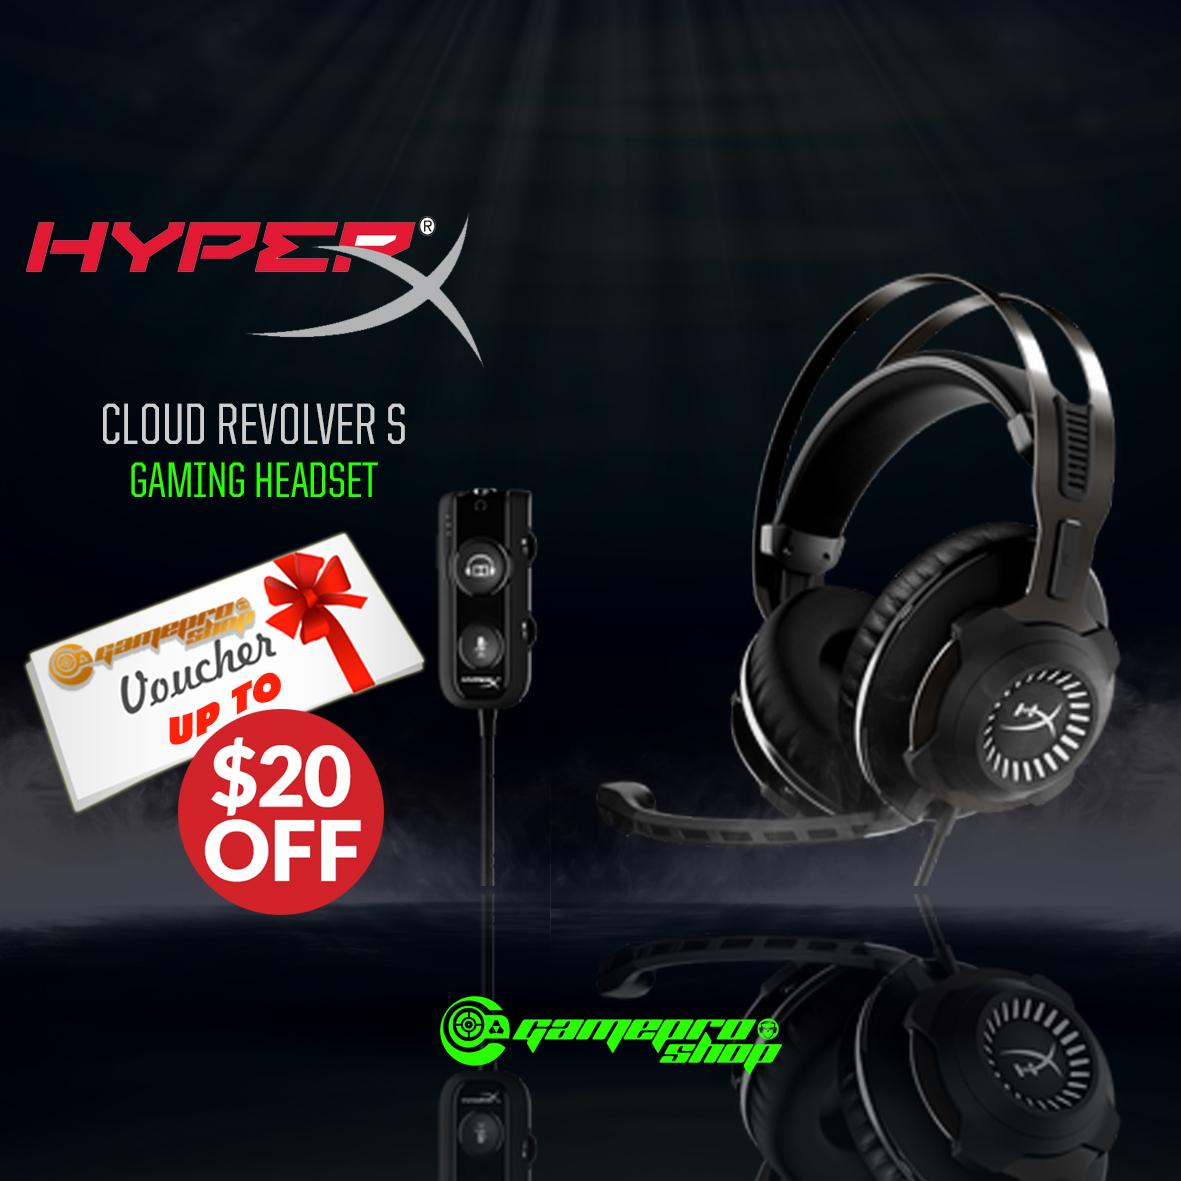 HyperX Cloud RevolverS Gaming Headset *BEST VALUE PROMO*